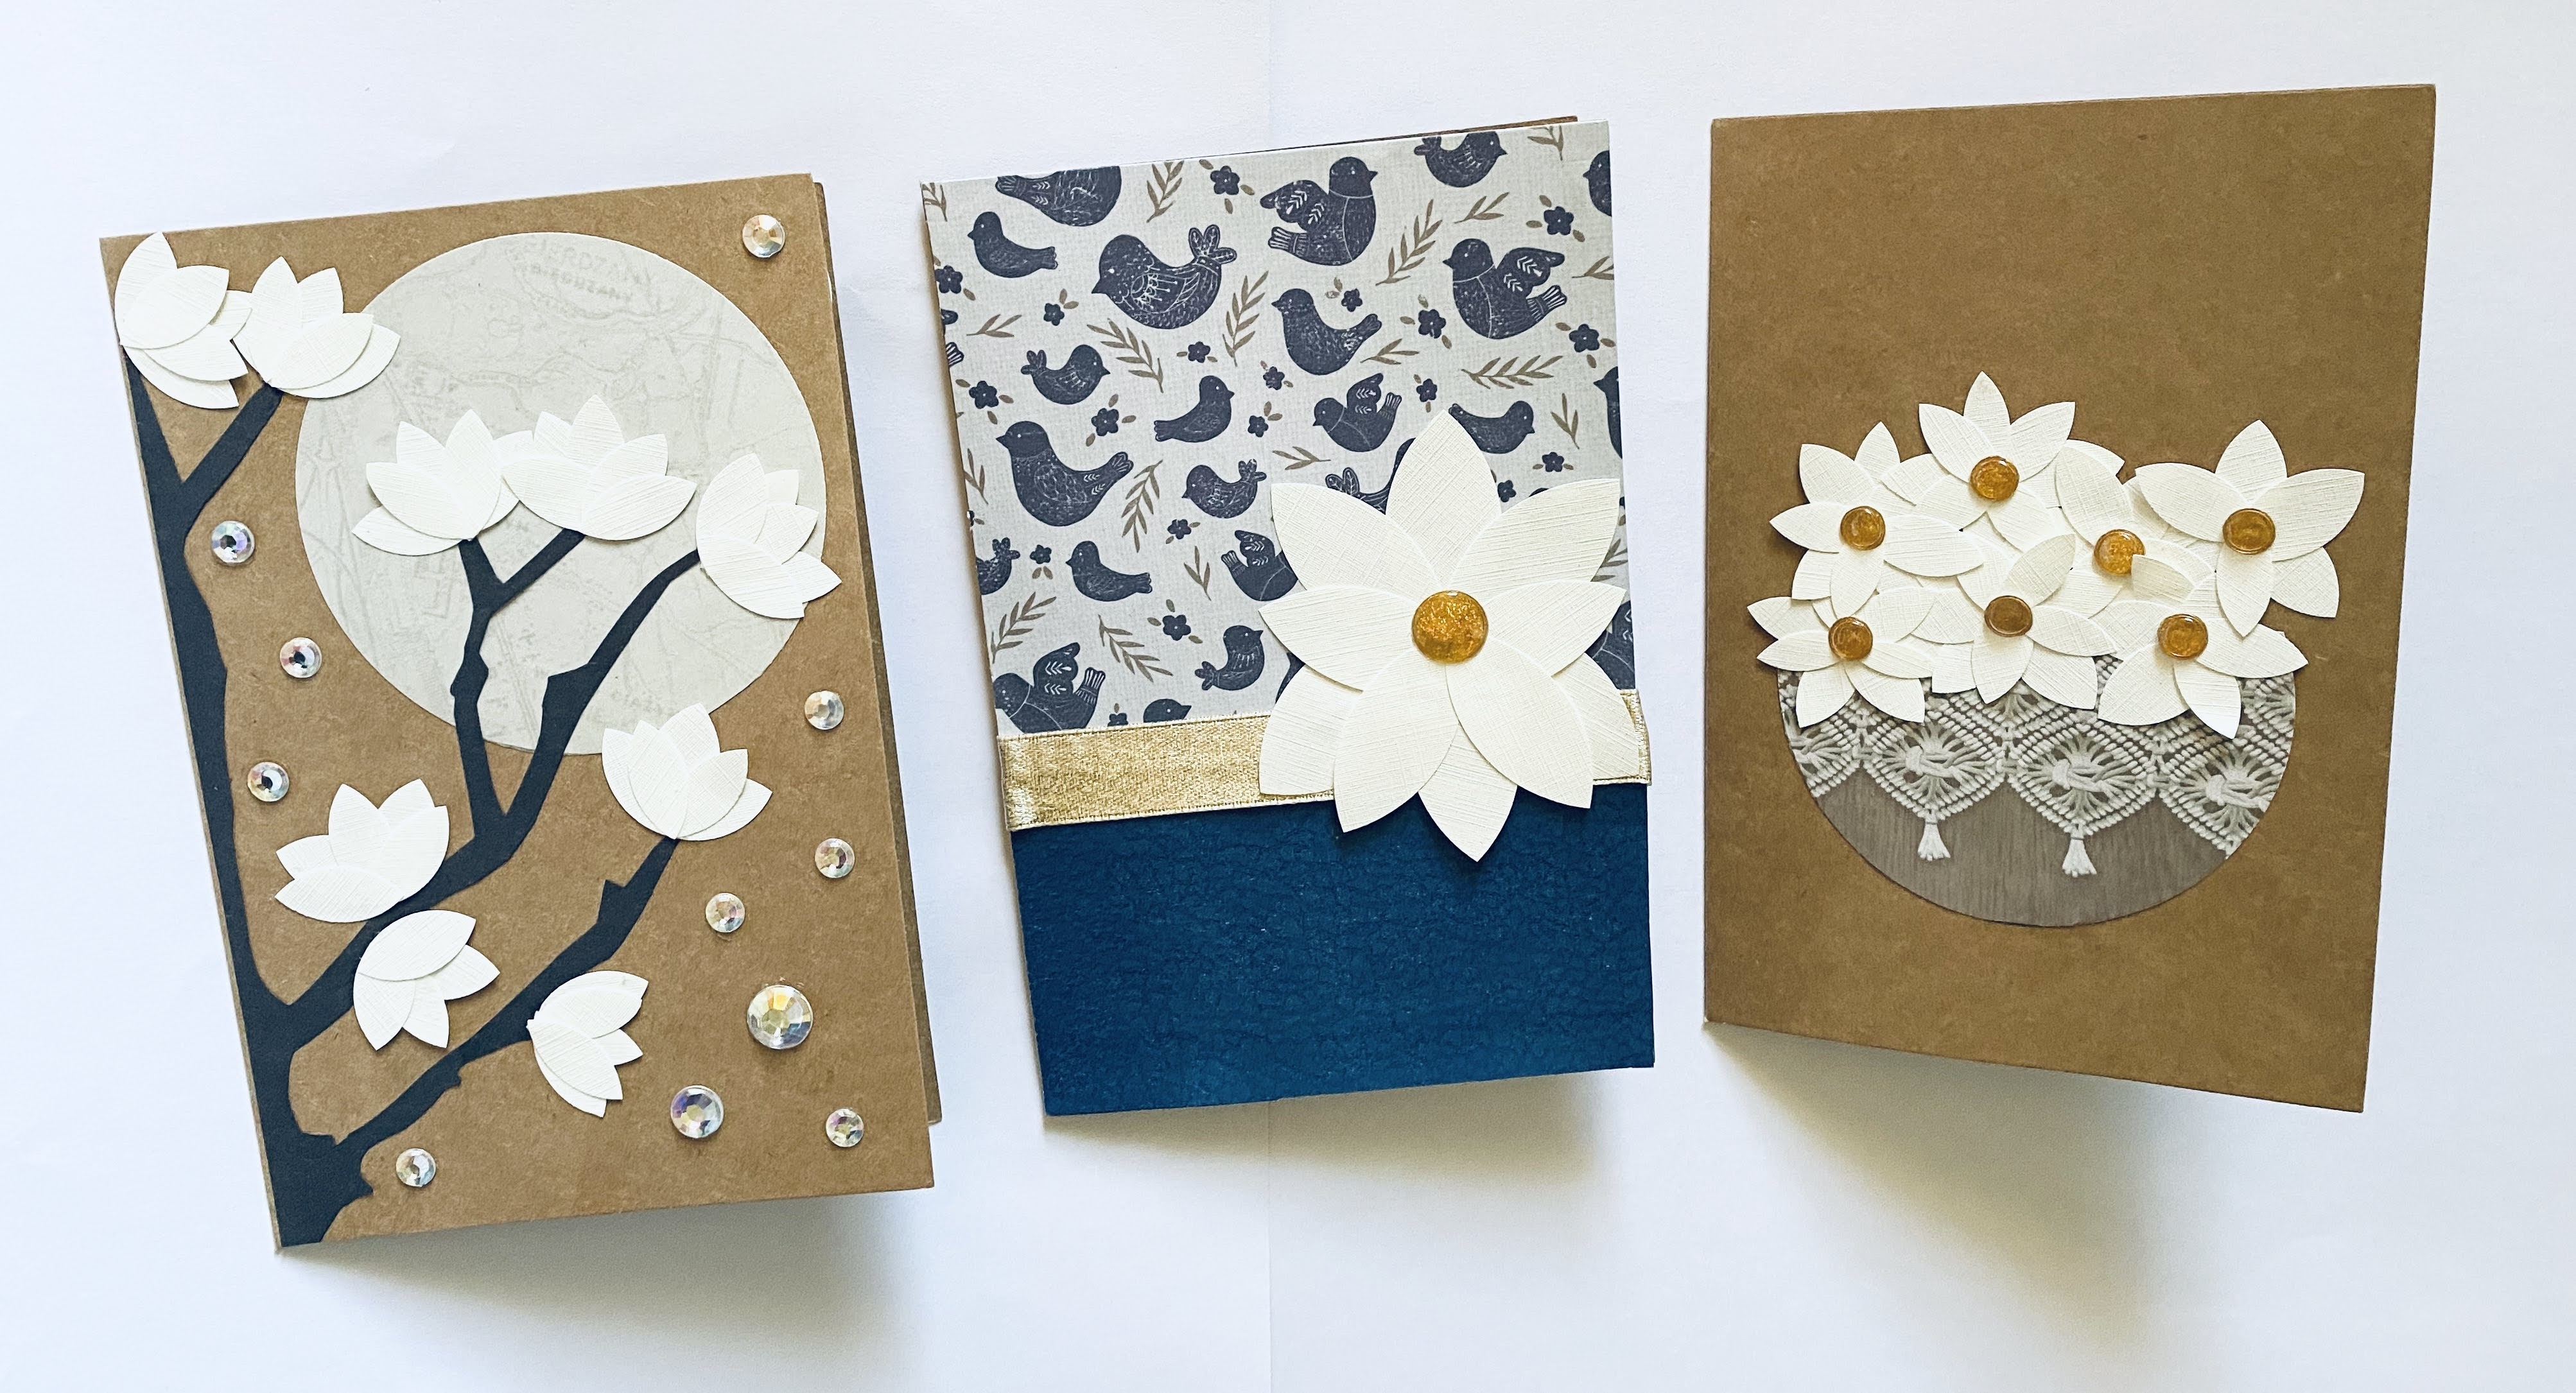 Homemade magnolia cards.  Magnolias by the moonlight, a magnolia flower basket, and a magnolia flower with patterned paper.